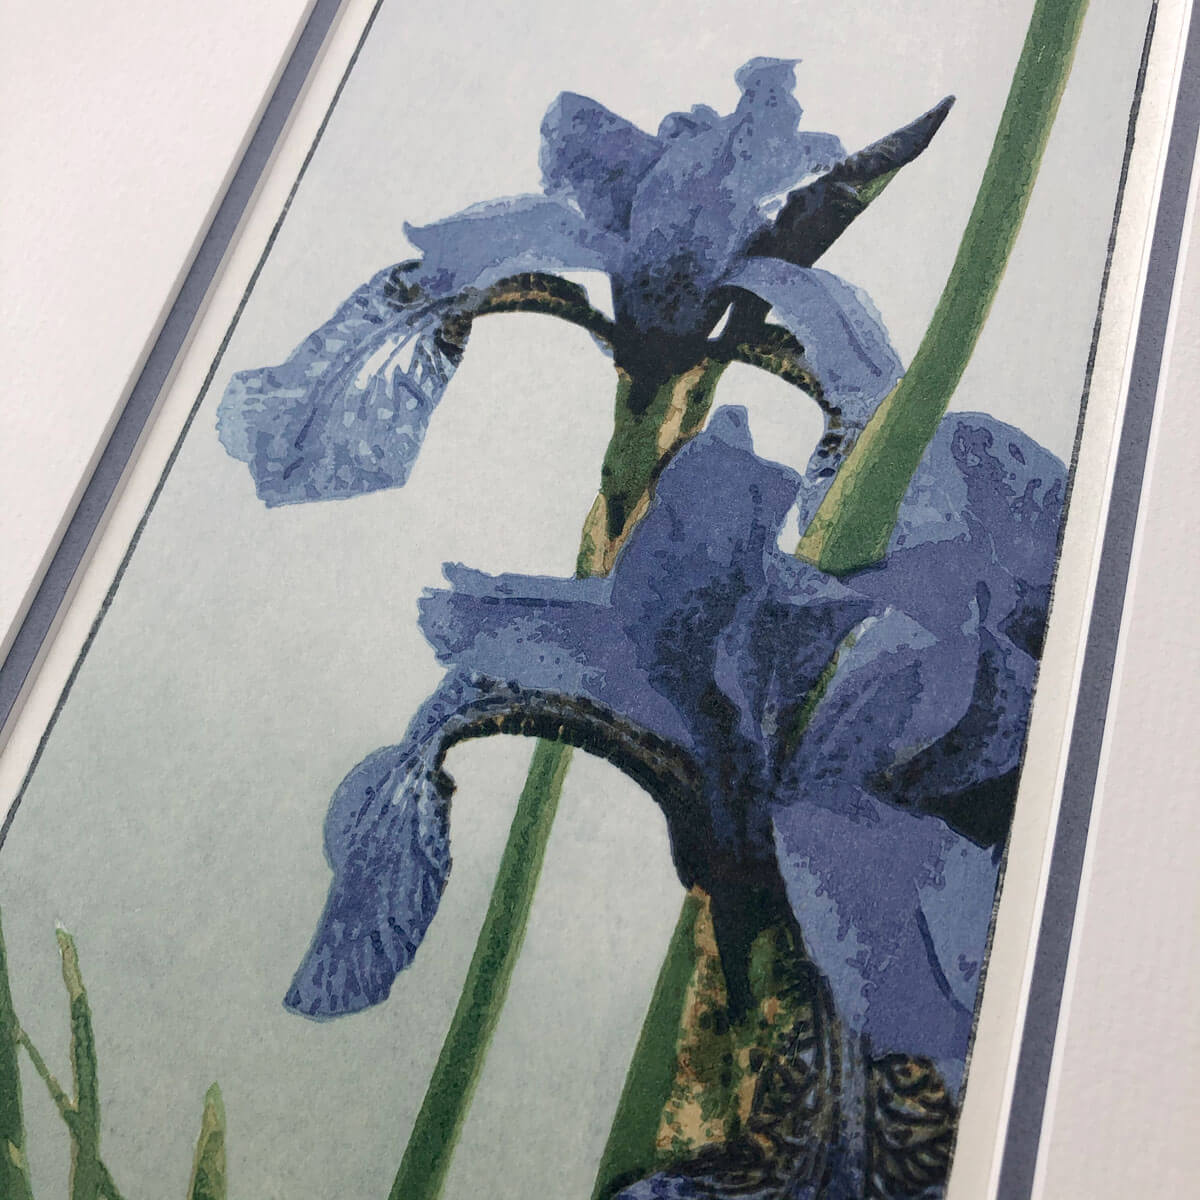 handmade limited edition woodblock print of purple iris flowers and green foliage against a graded pale blue green background